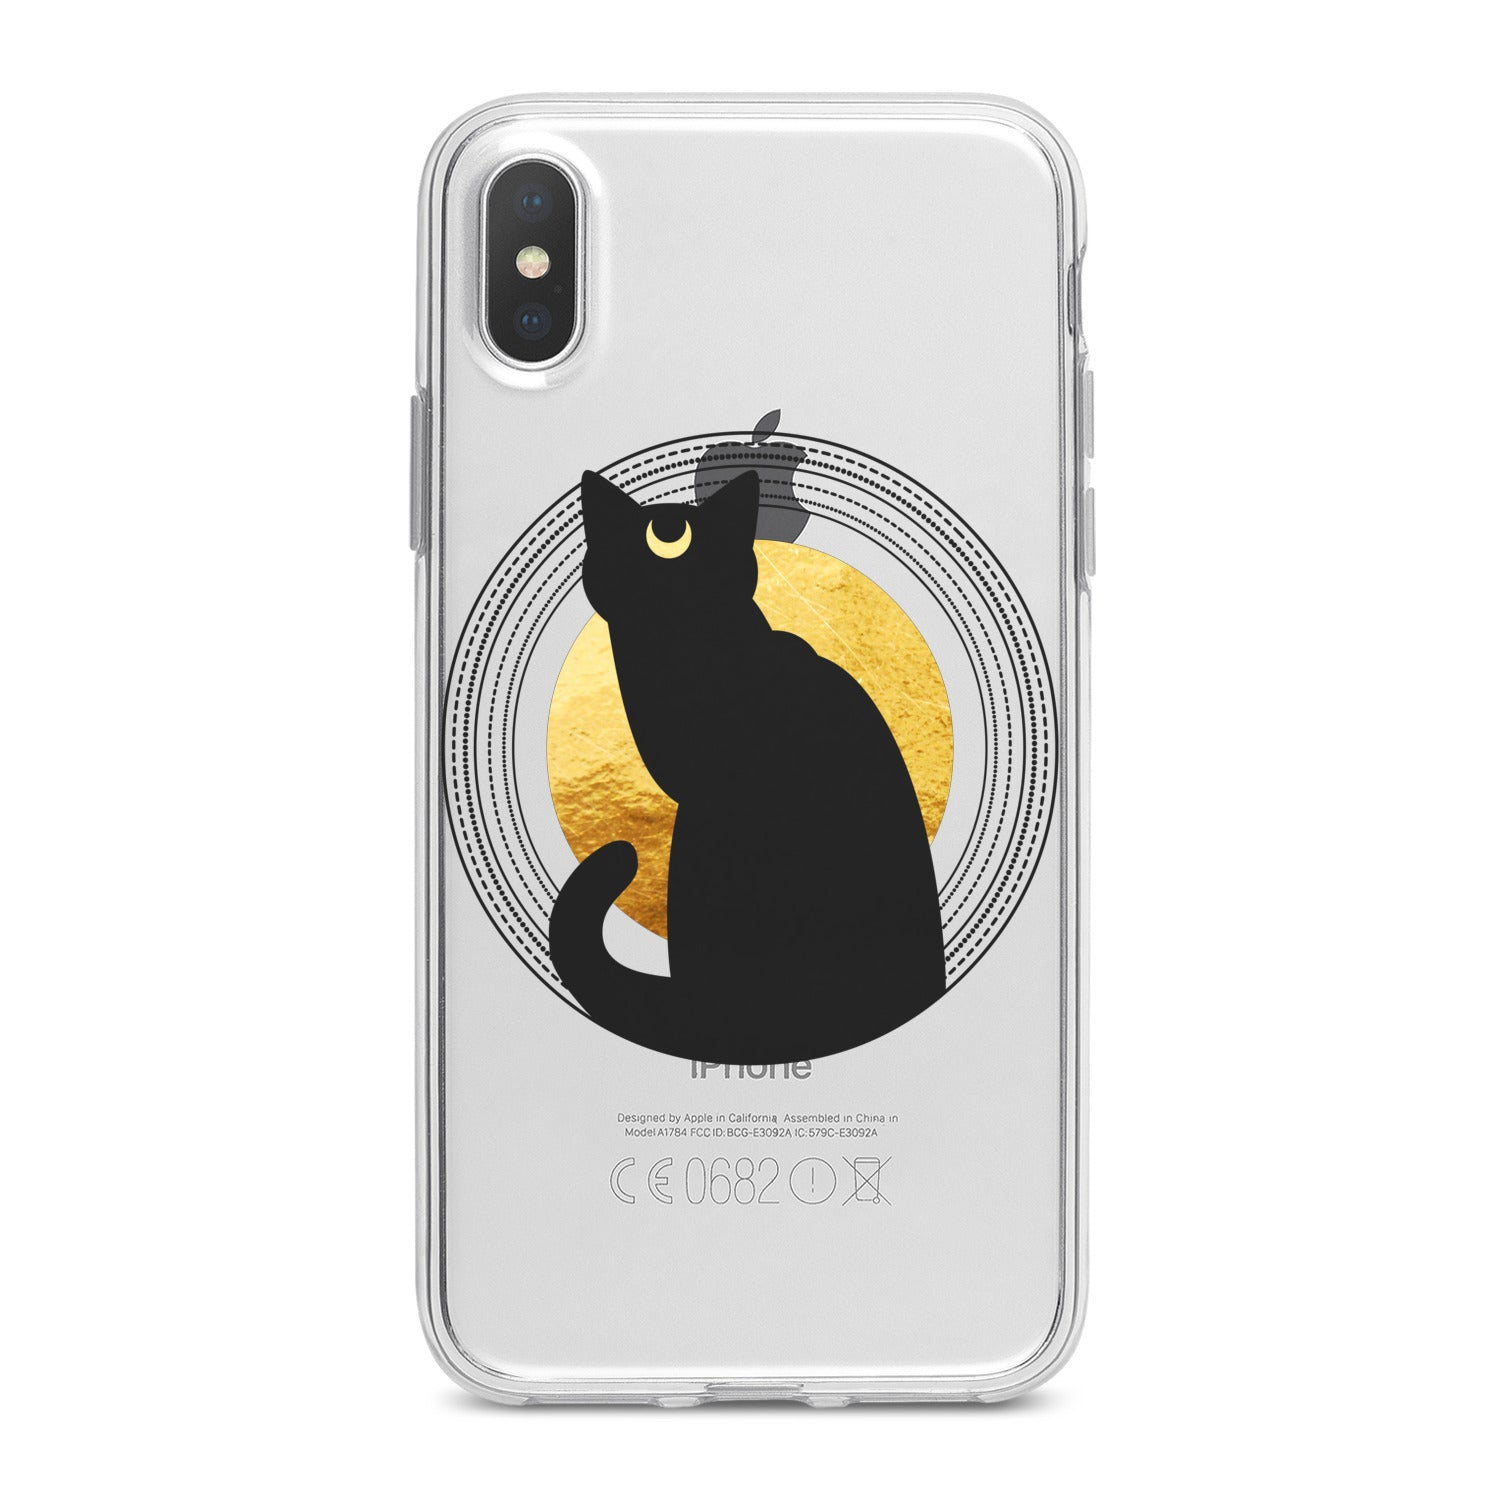 Lex Altern Bohemian Black Cat Phone Case for your iPhone & Android phone.